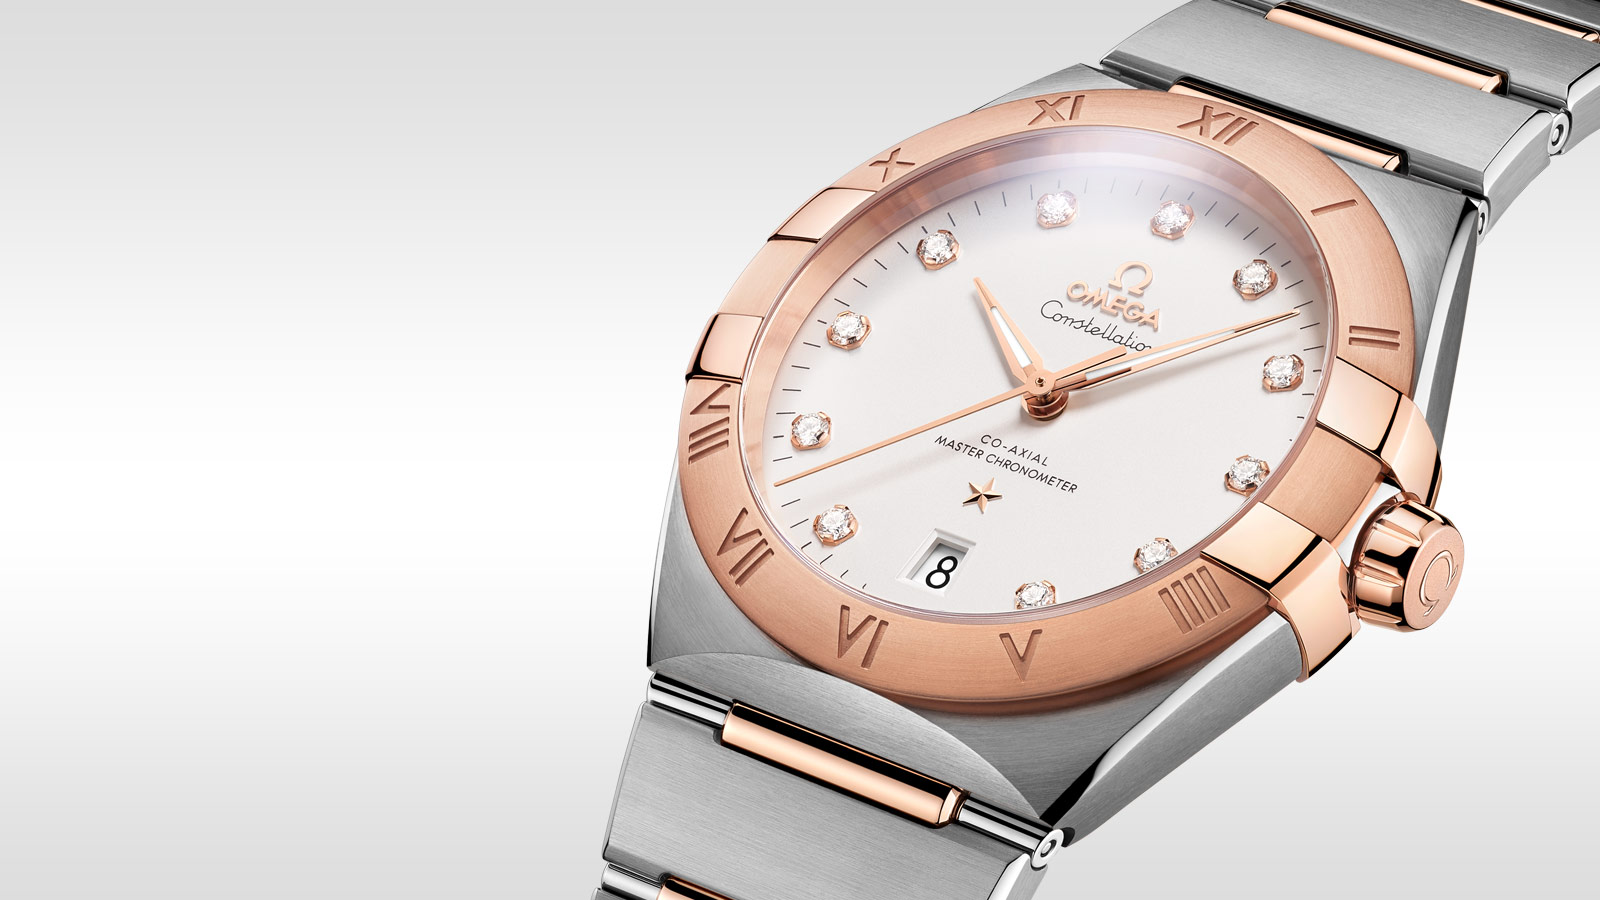 Constellation Constellation Constellation OMEGA Co‑Axial Master Chronometer 39 mm - 131.20.39.20.52.001 - View 2